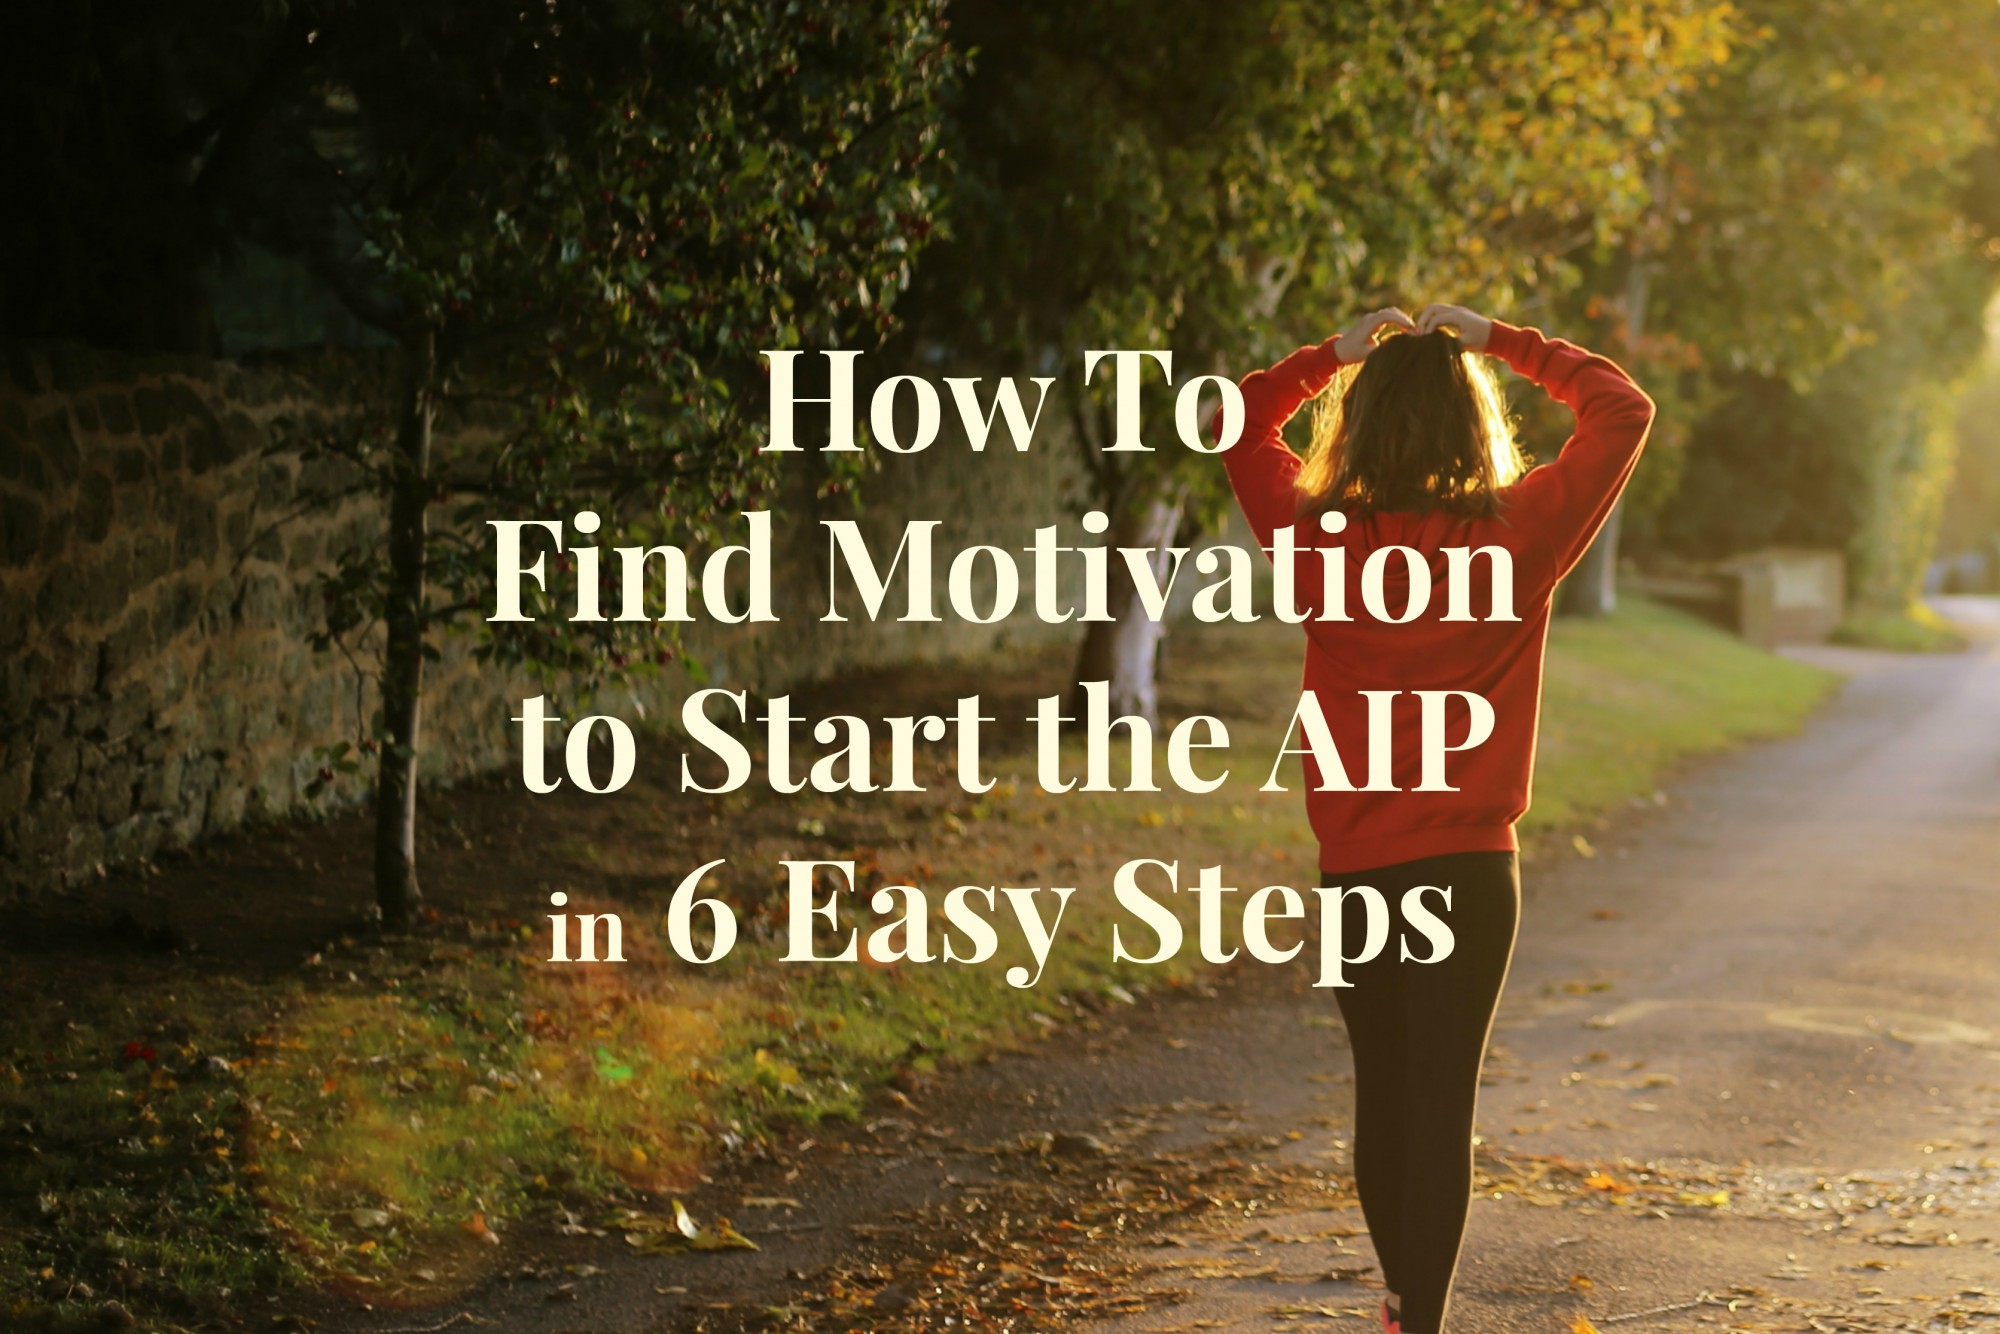 How to Find Motivation to Start AIP in 6 Easy Steps